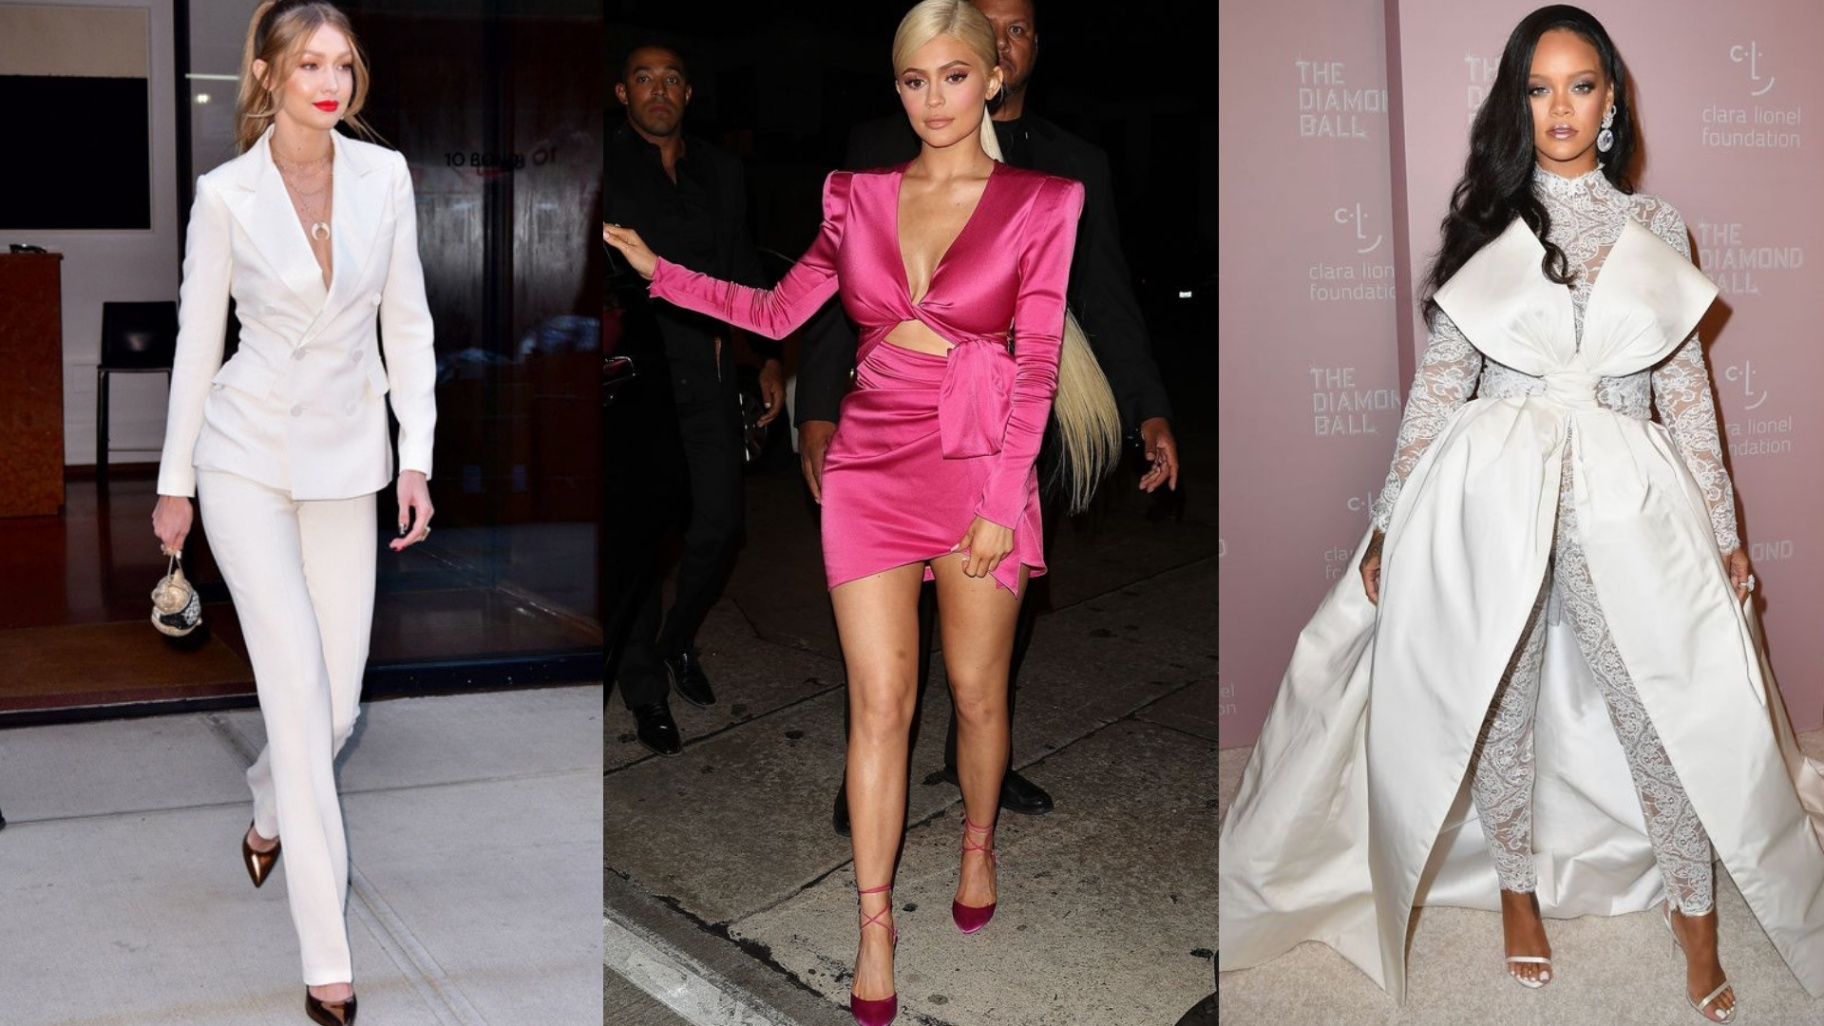 Here's Some of the Best Celebrity-Owned Clothing Lines to Buy From